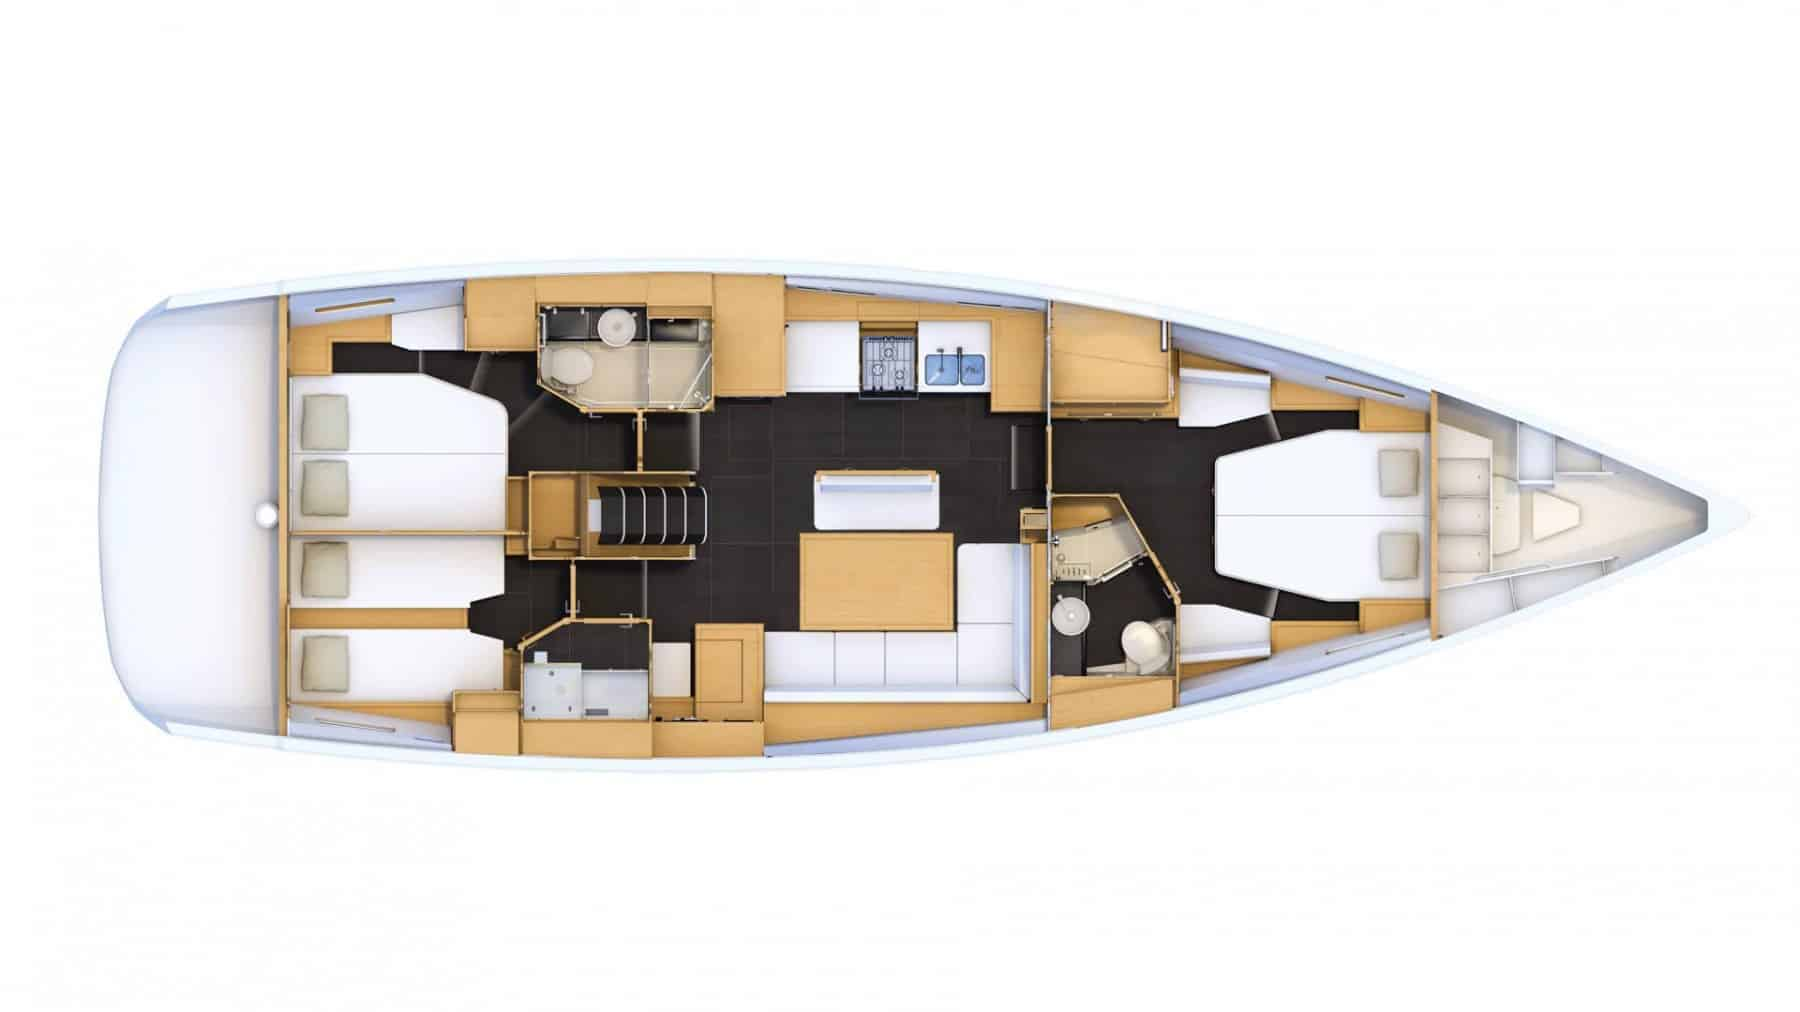 Jeanneau-54-layout-1-charter-ownership-yacht